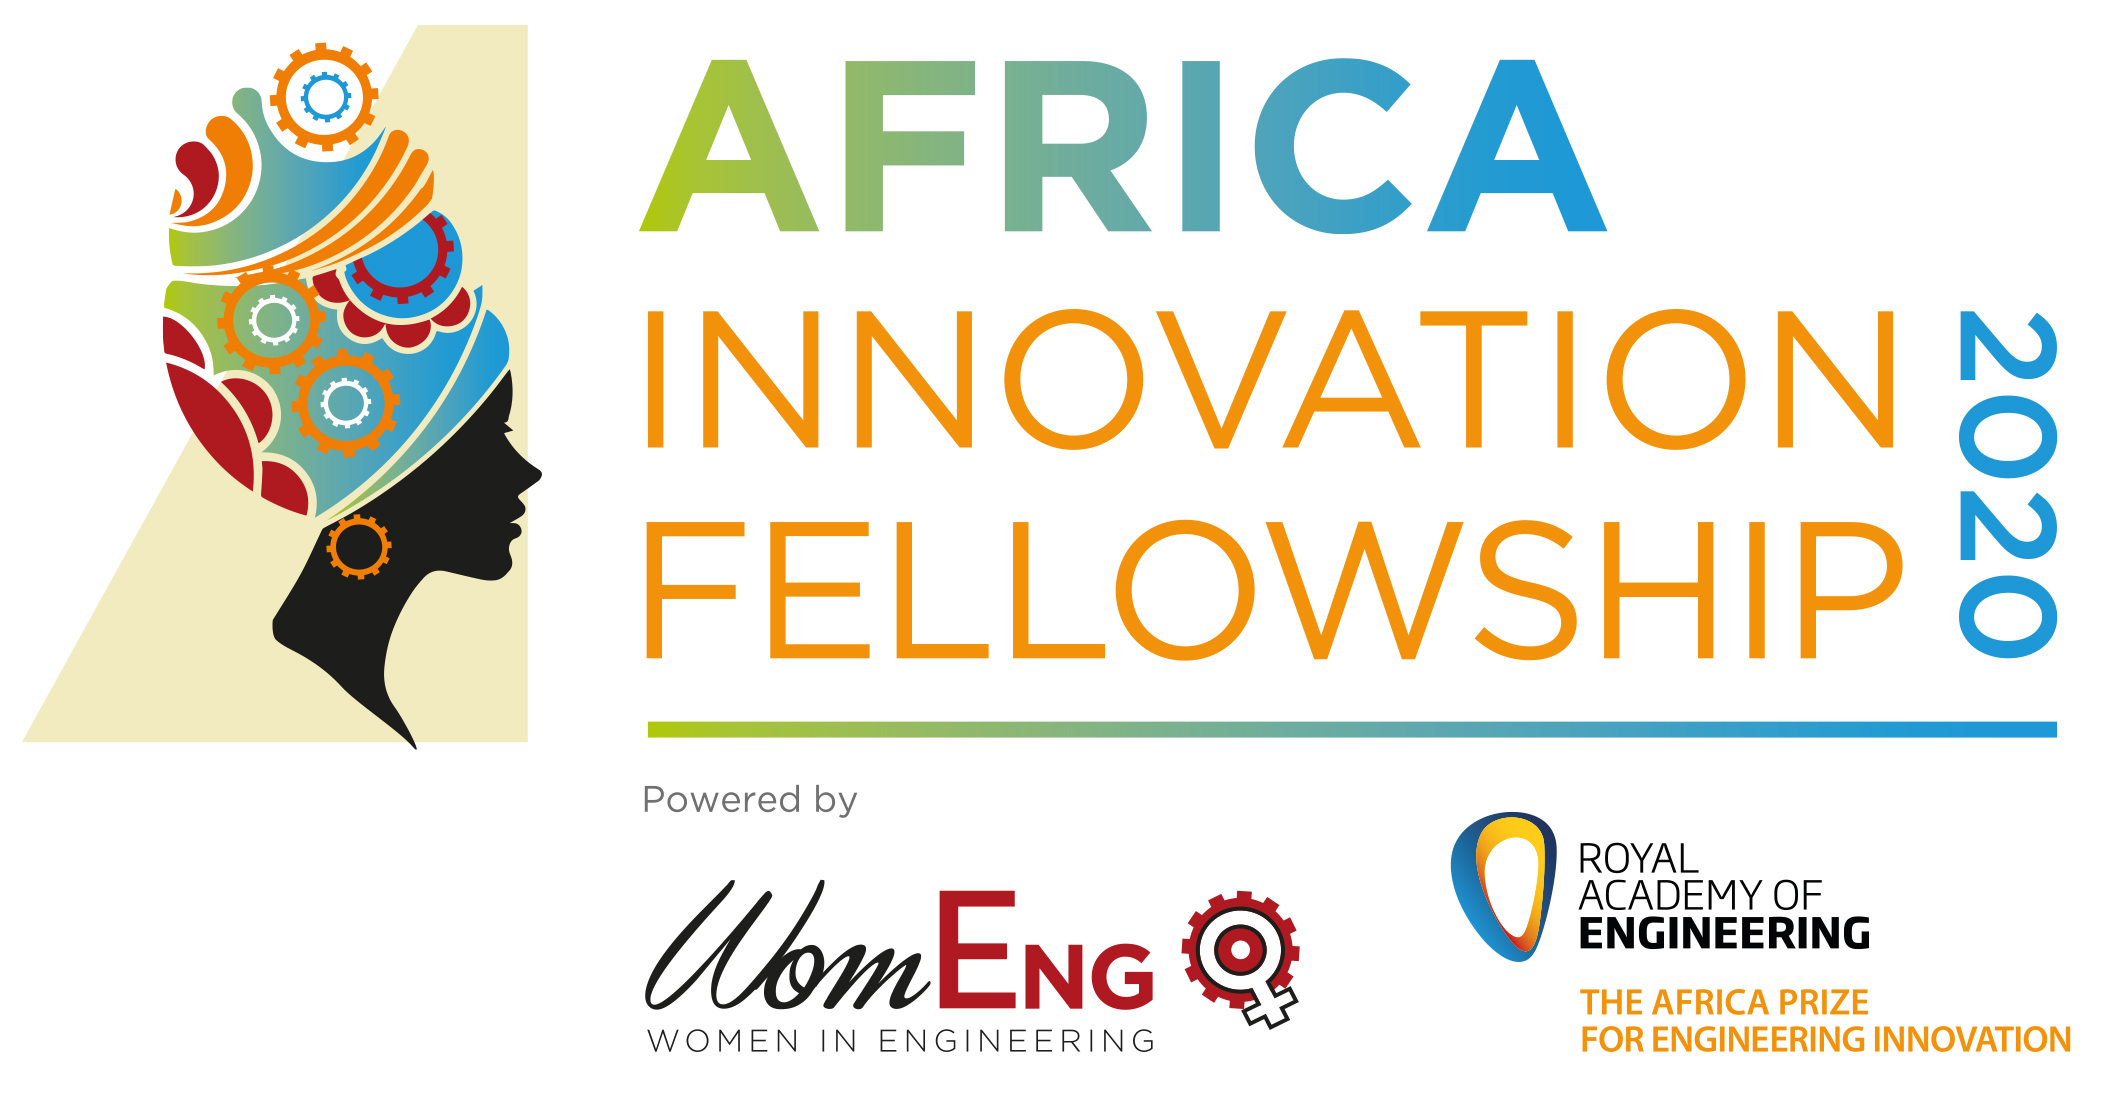 WomENG/Royal Academy of Engineering Africa Innovation Fellowship 2020